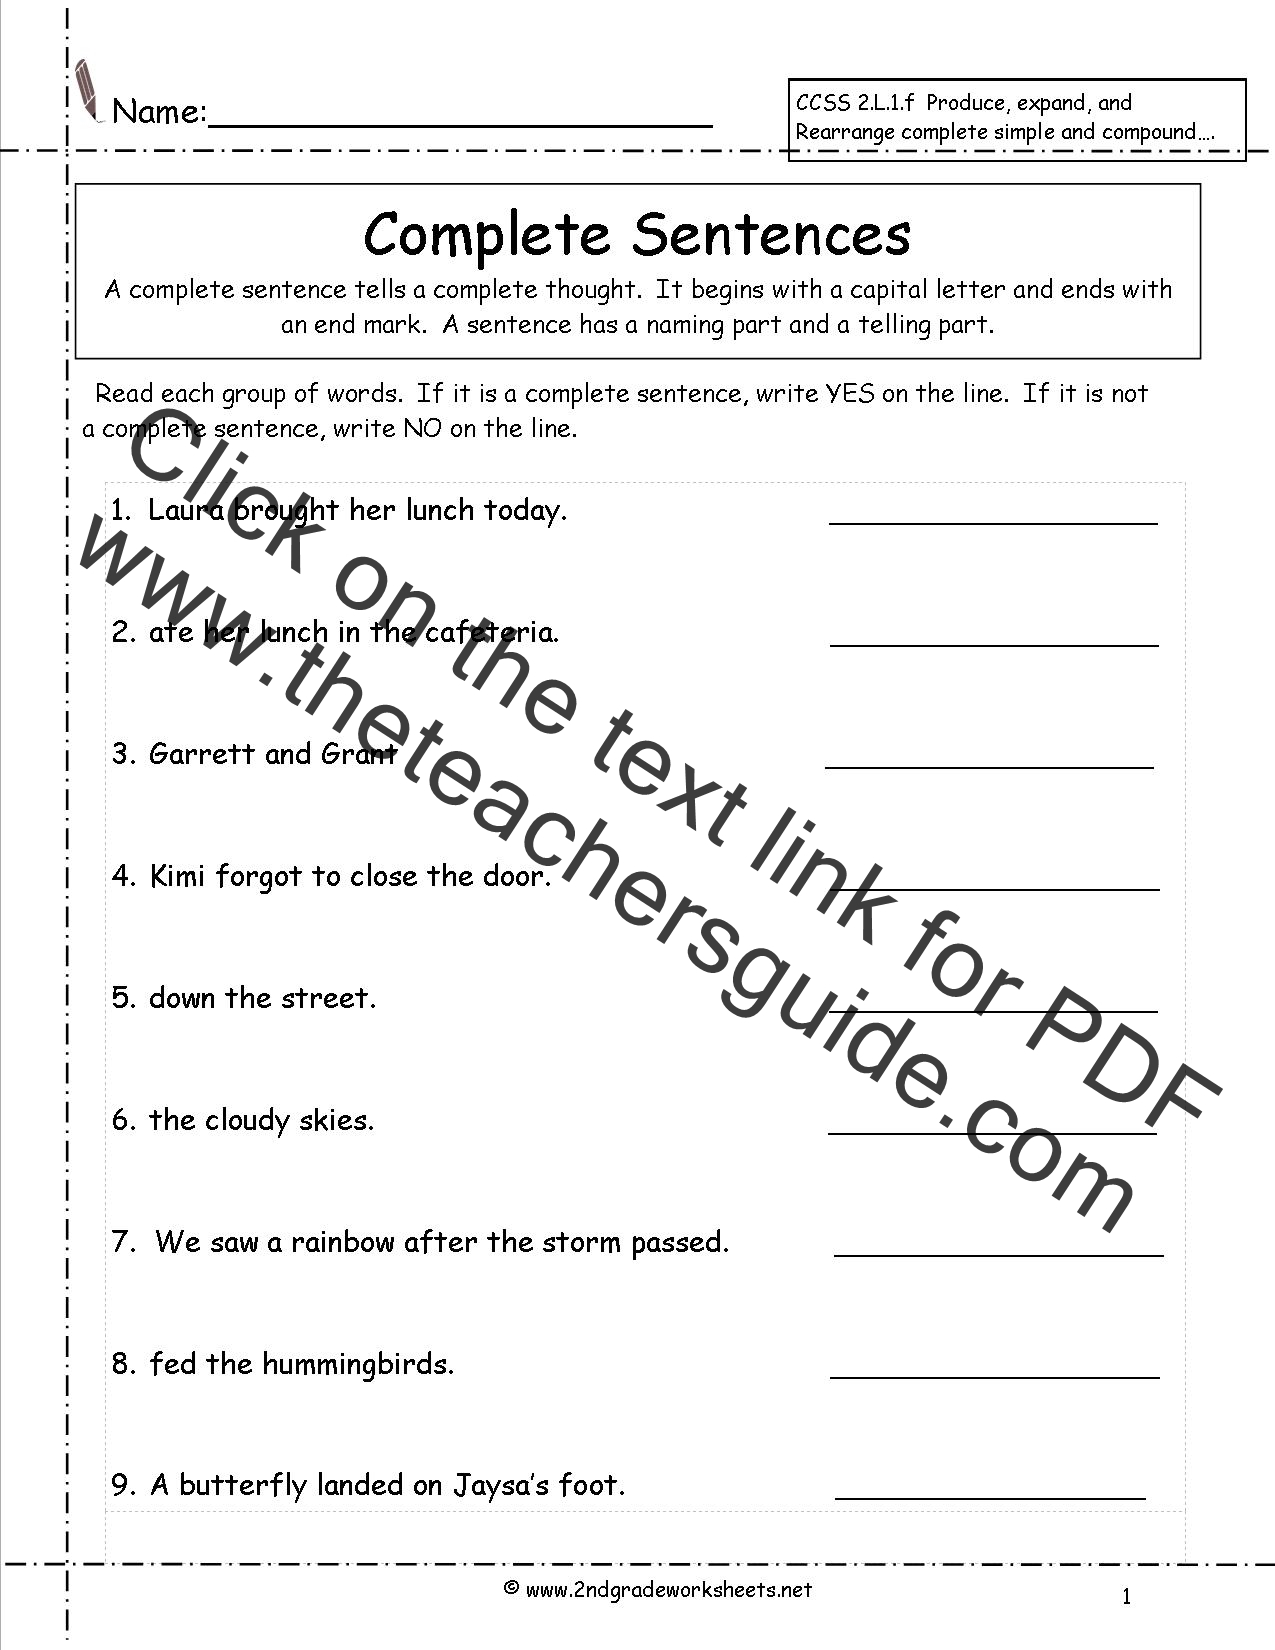 Second Grade Sentences Worksheets CCSS 2L1f Worksheets – I Statement Worksheets